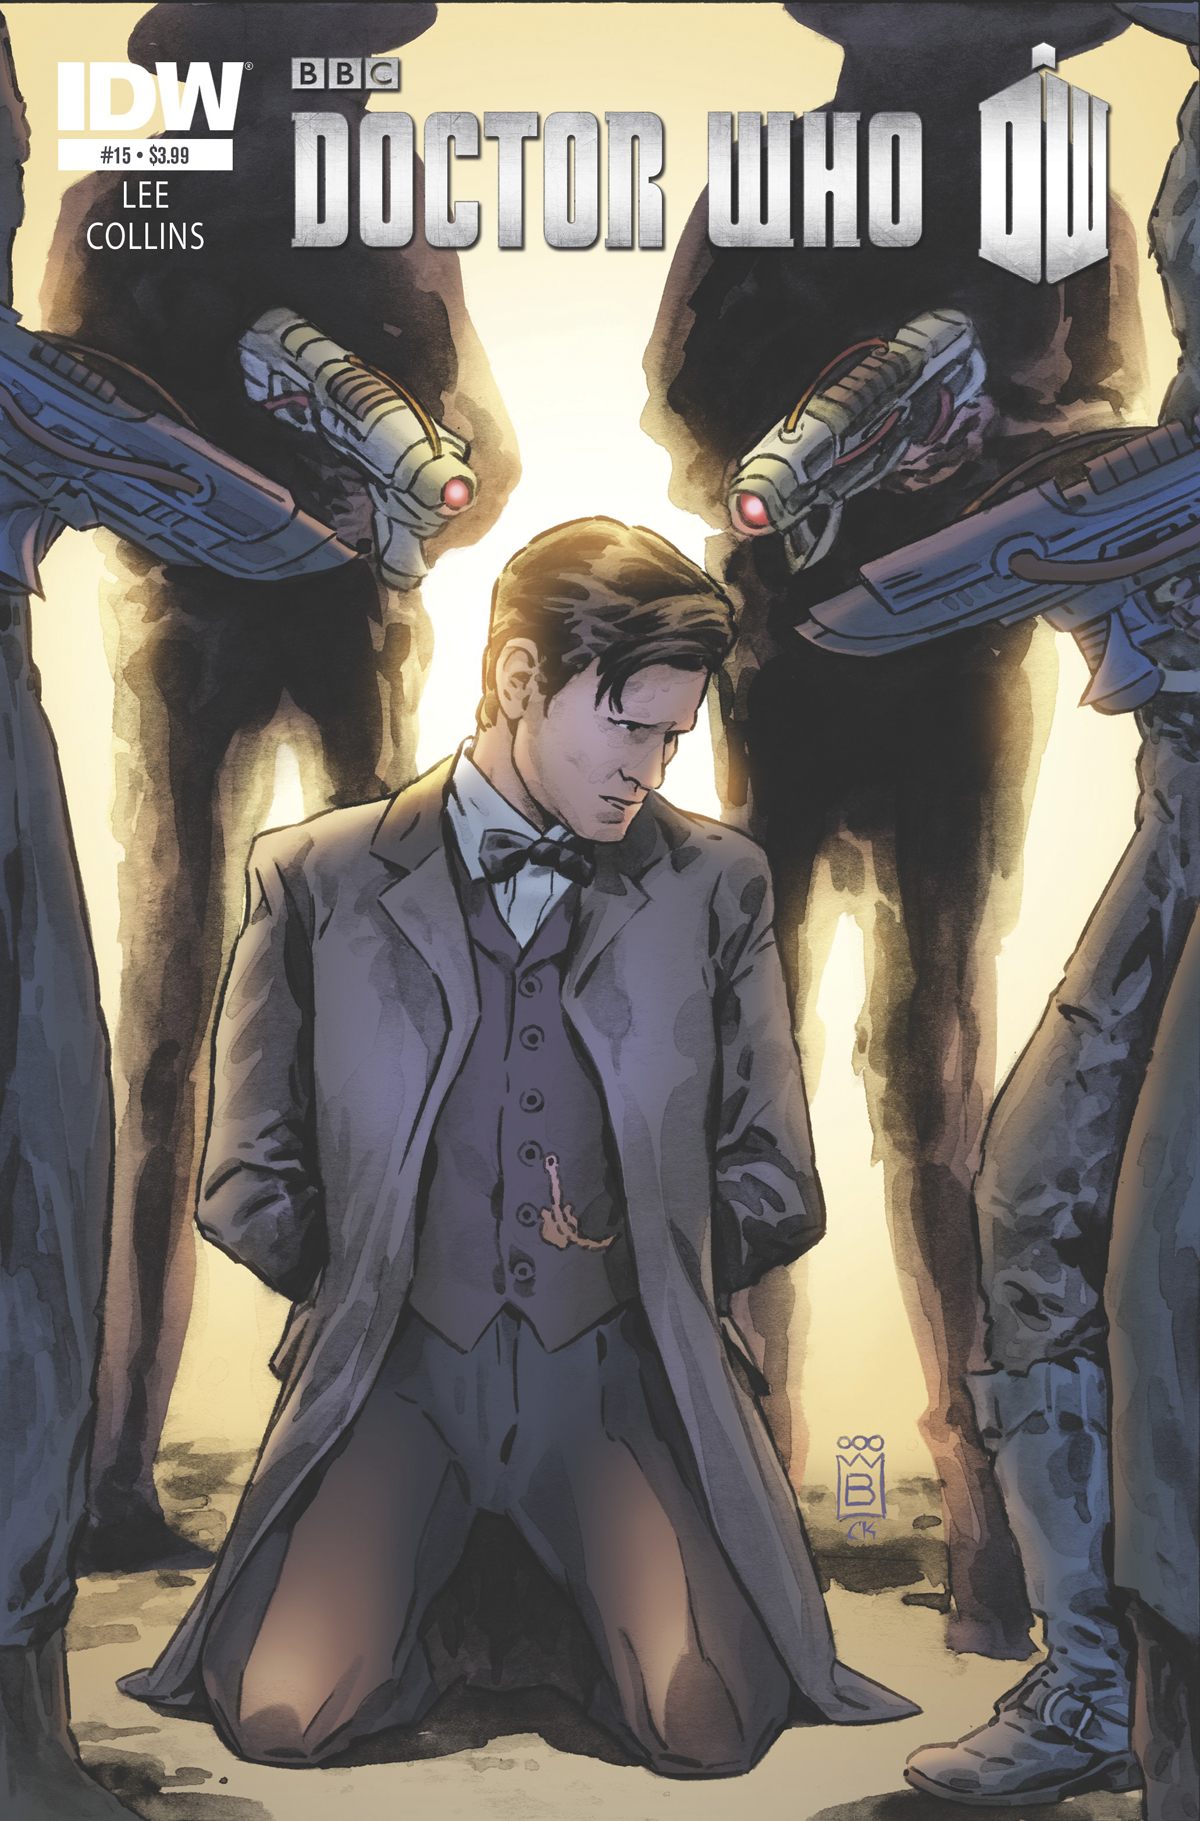 DOCTOR WHO VOL 3 #15